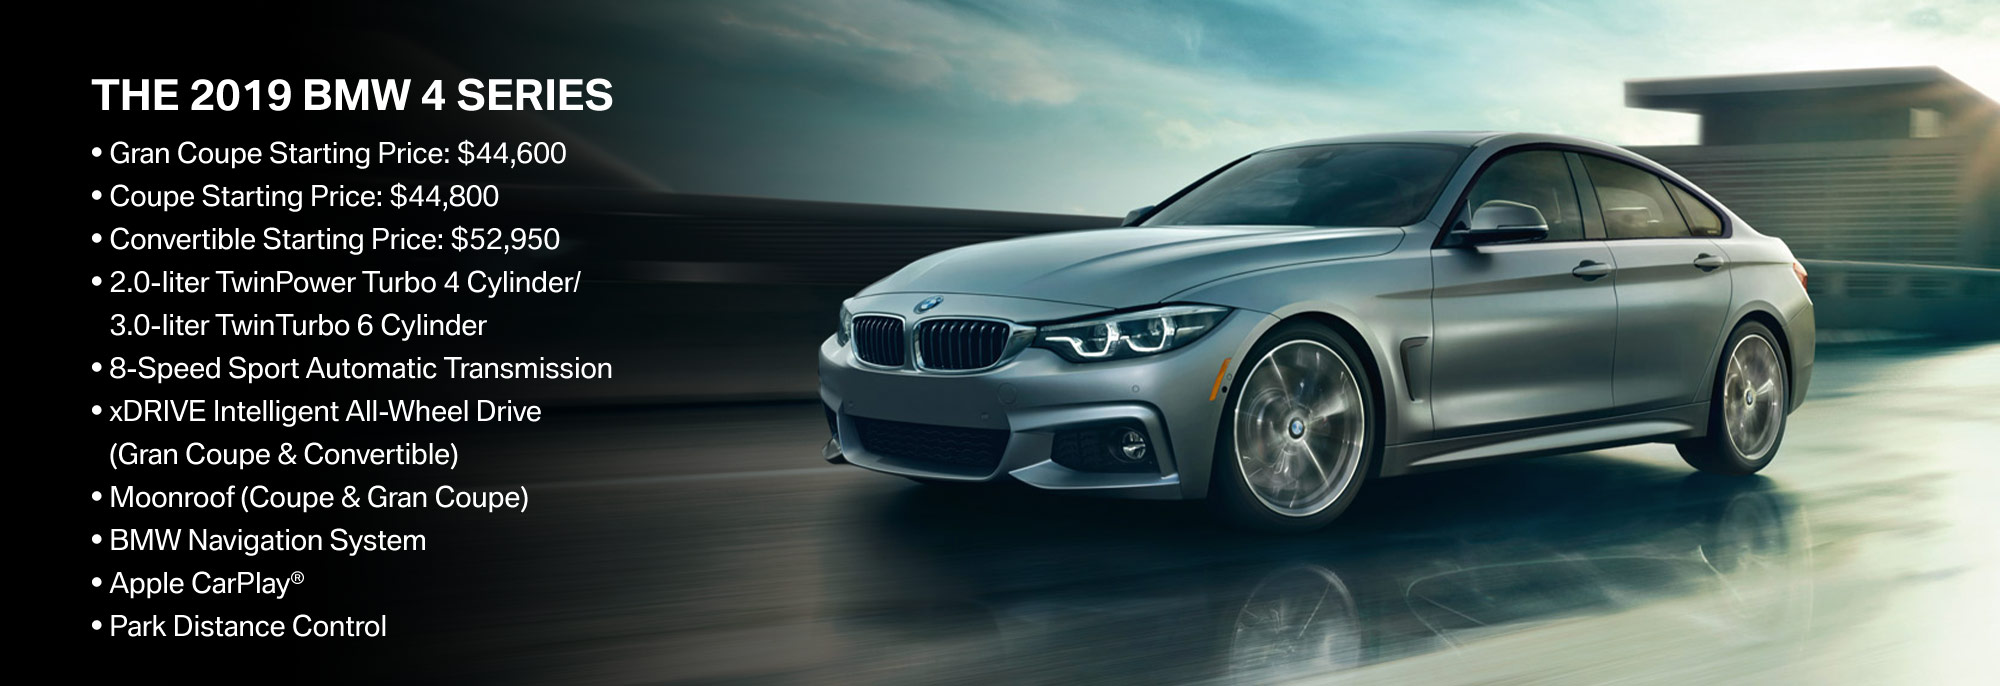 New 2019 BMW 4 Series Offer